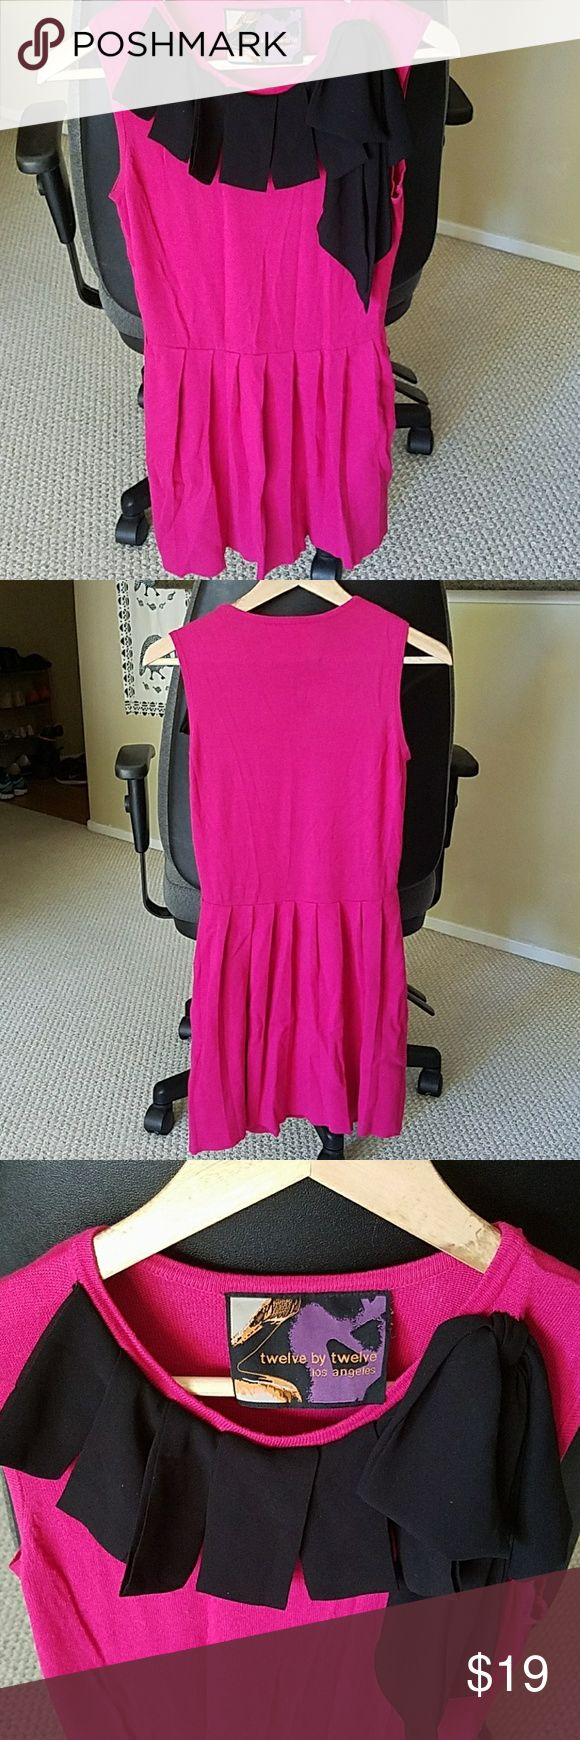 Adorable pleated hot pink dress with bow detail Classy dress, wear with tights at work, to go to a nice dinner/event, or fun weekend wear! Can dress up or down. Black bow detailing at collar and pleated skirt. Great for petite ladies. Dresses